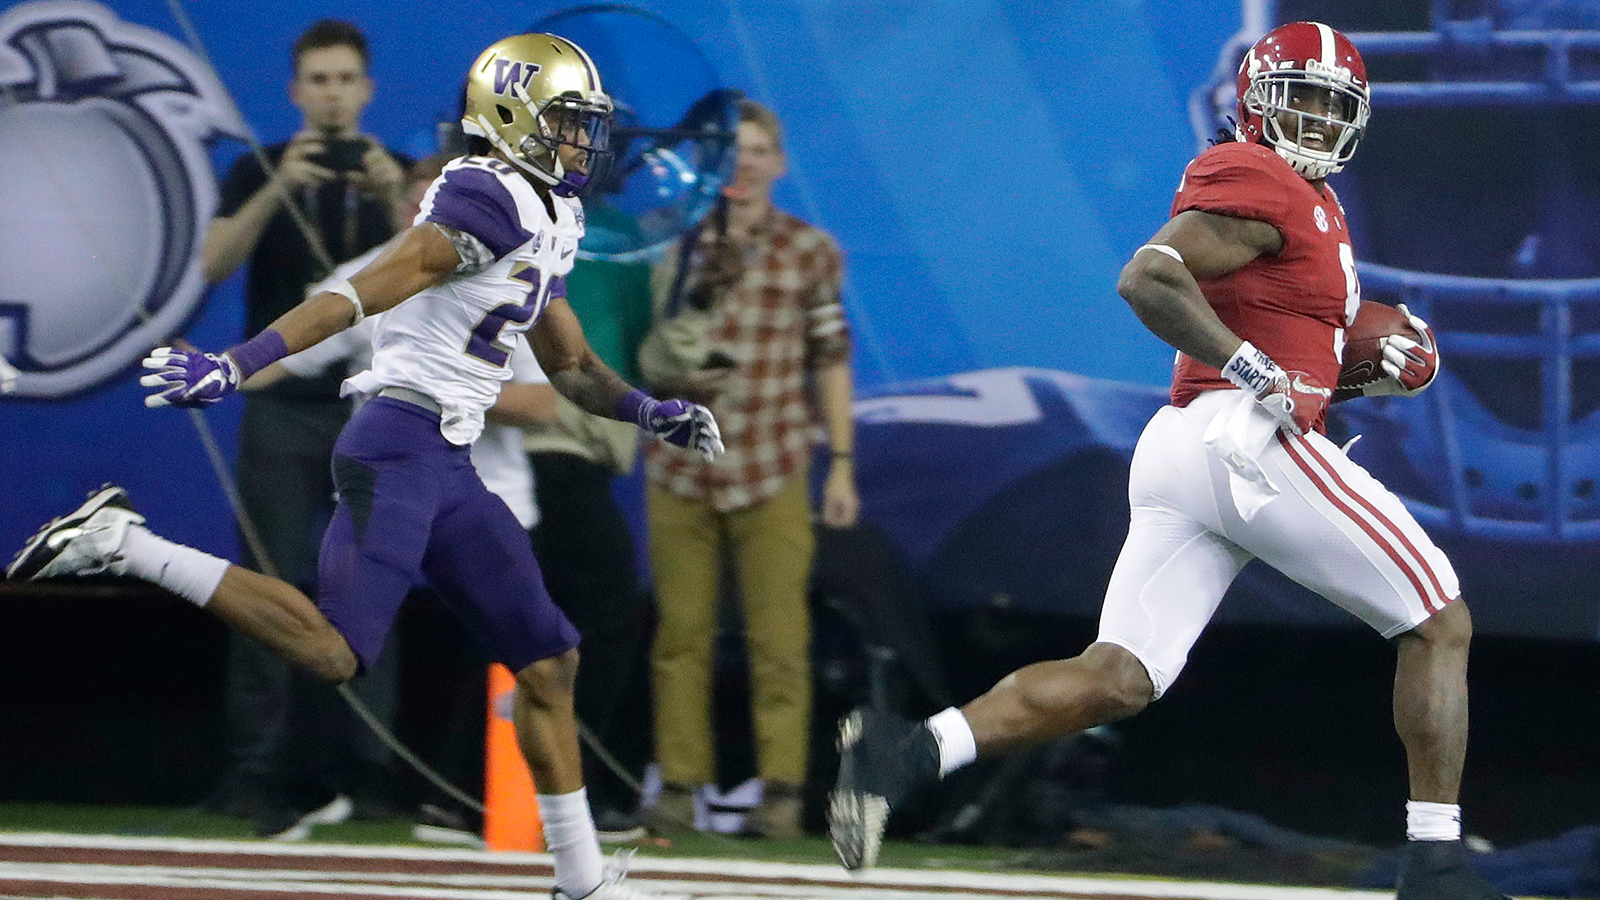 Peach Bowl: Everything you need to know for Washington-Alabama